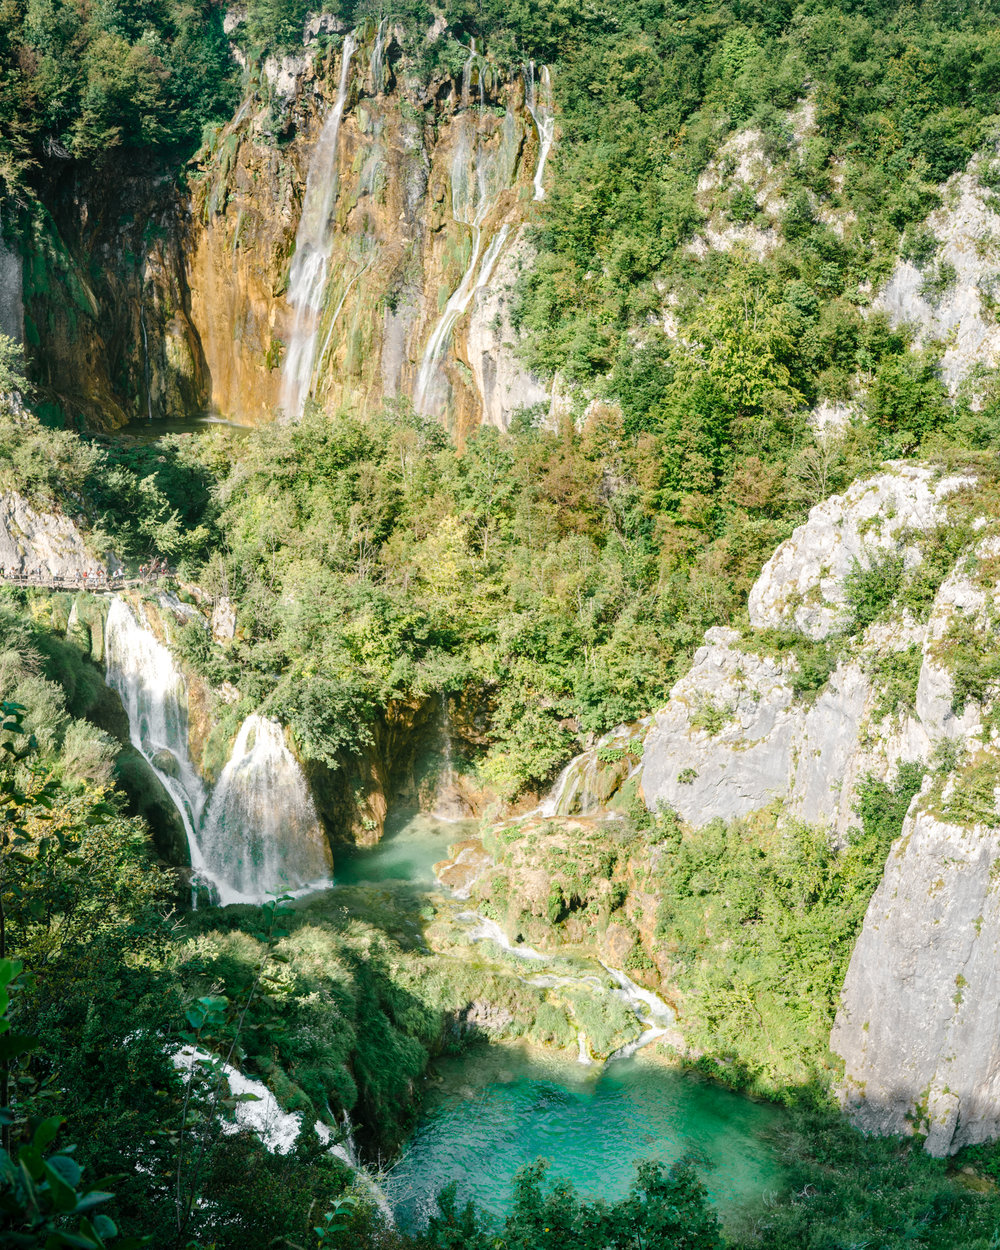 How to find the waterfalls in Croatia